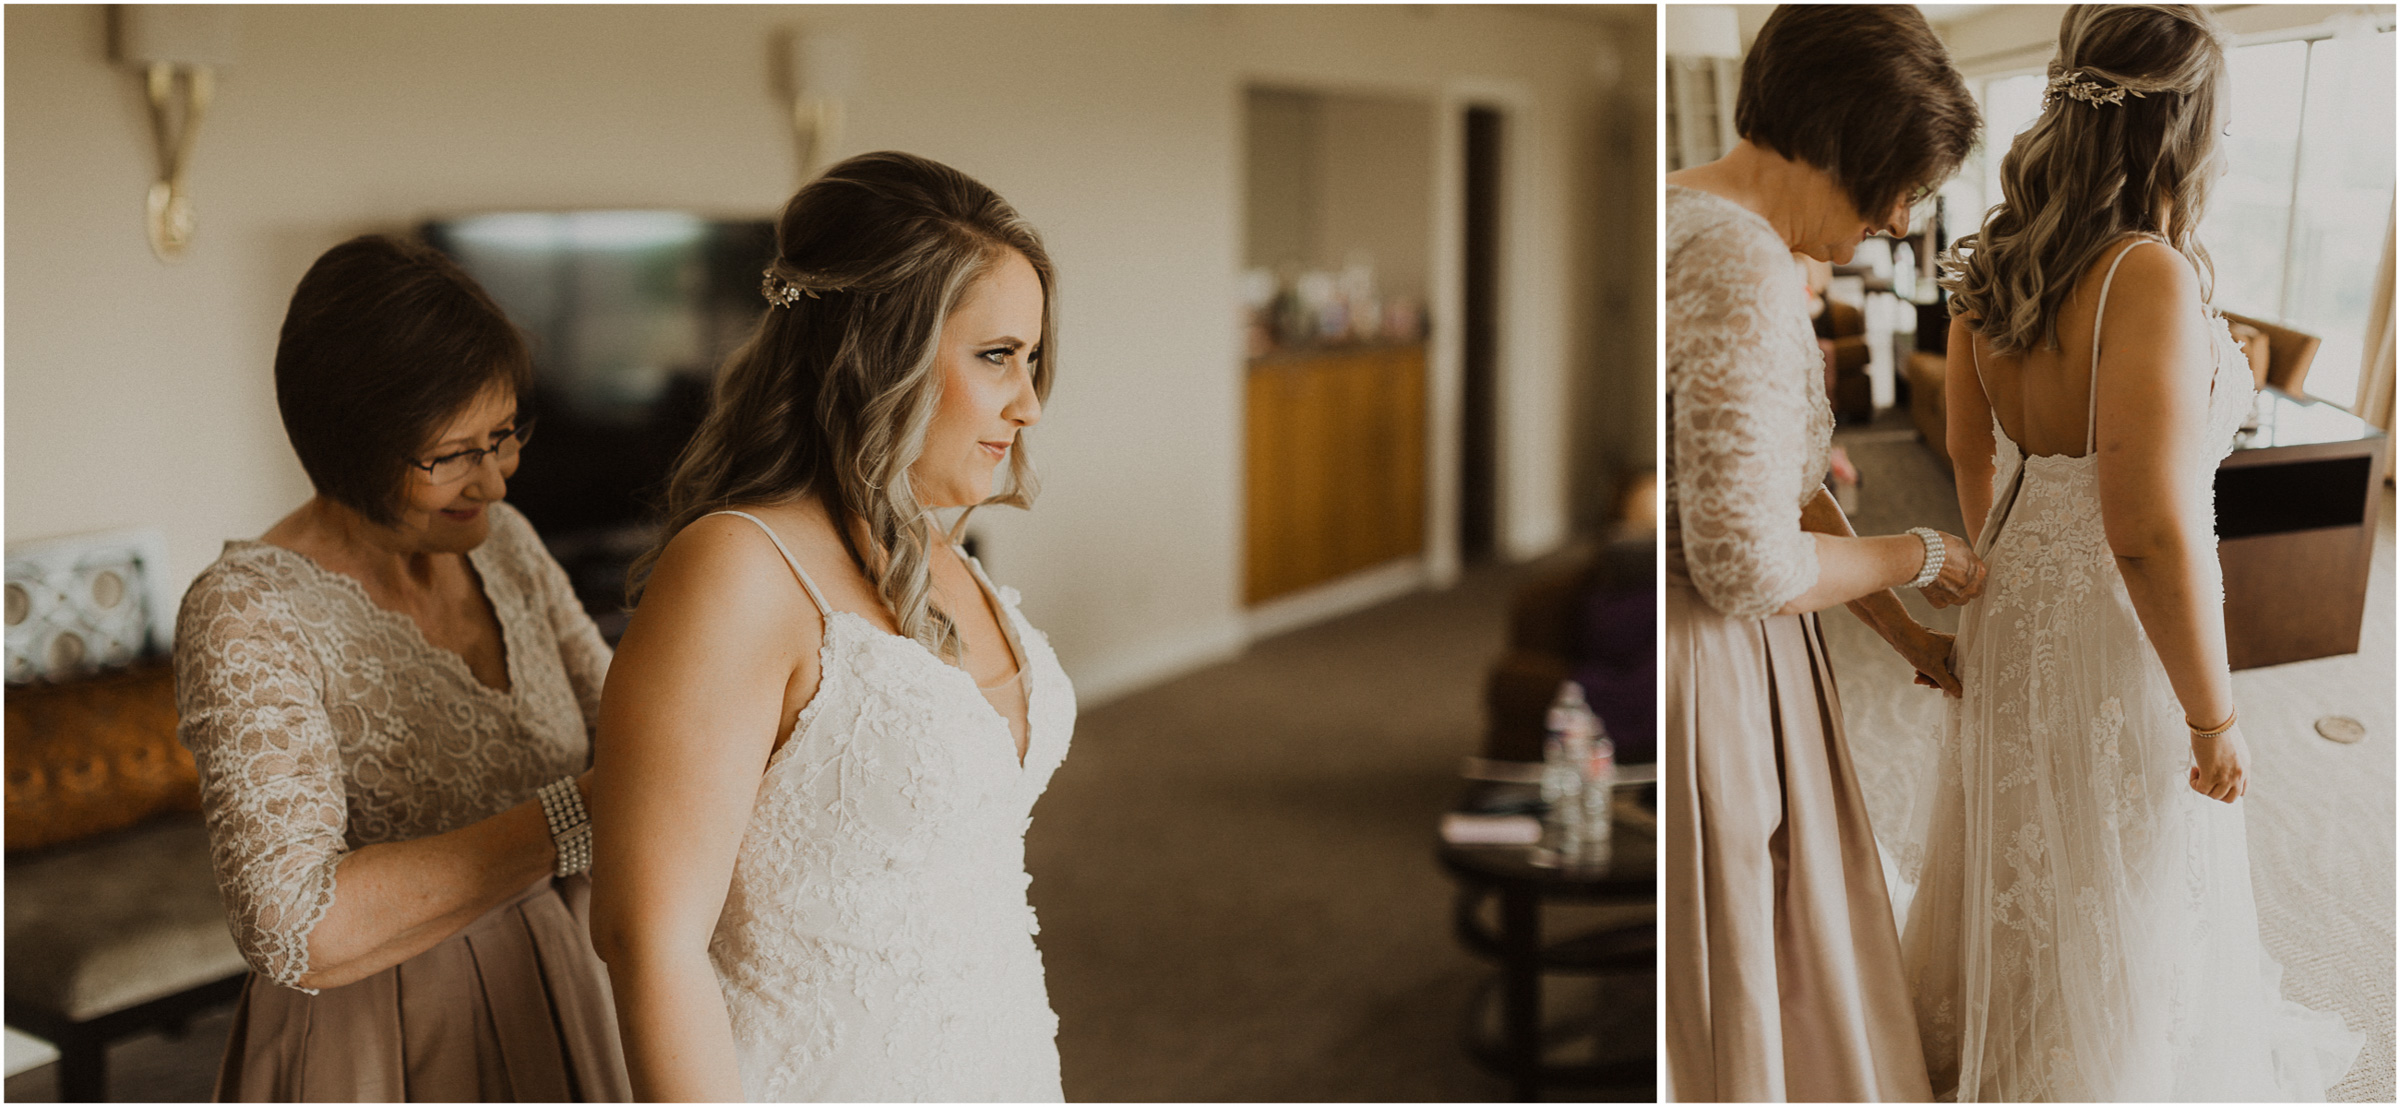 kansas city wedding photographer intimate summer wedding kc photography-7.jpg